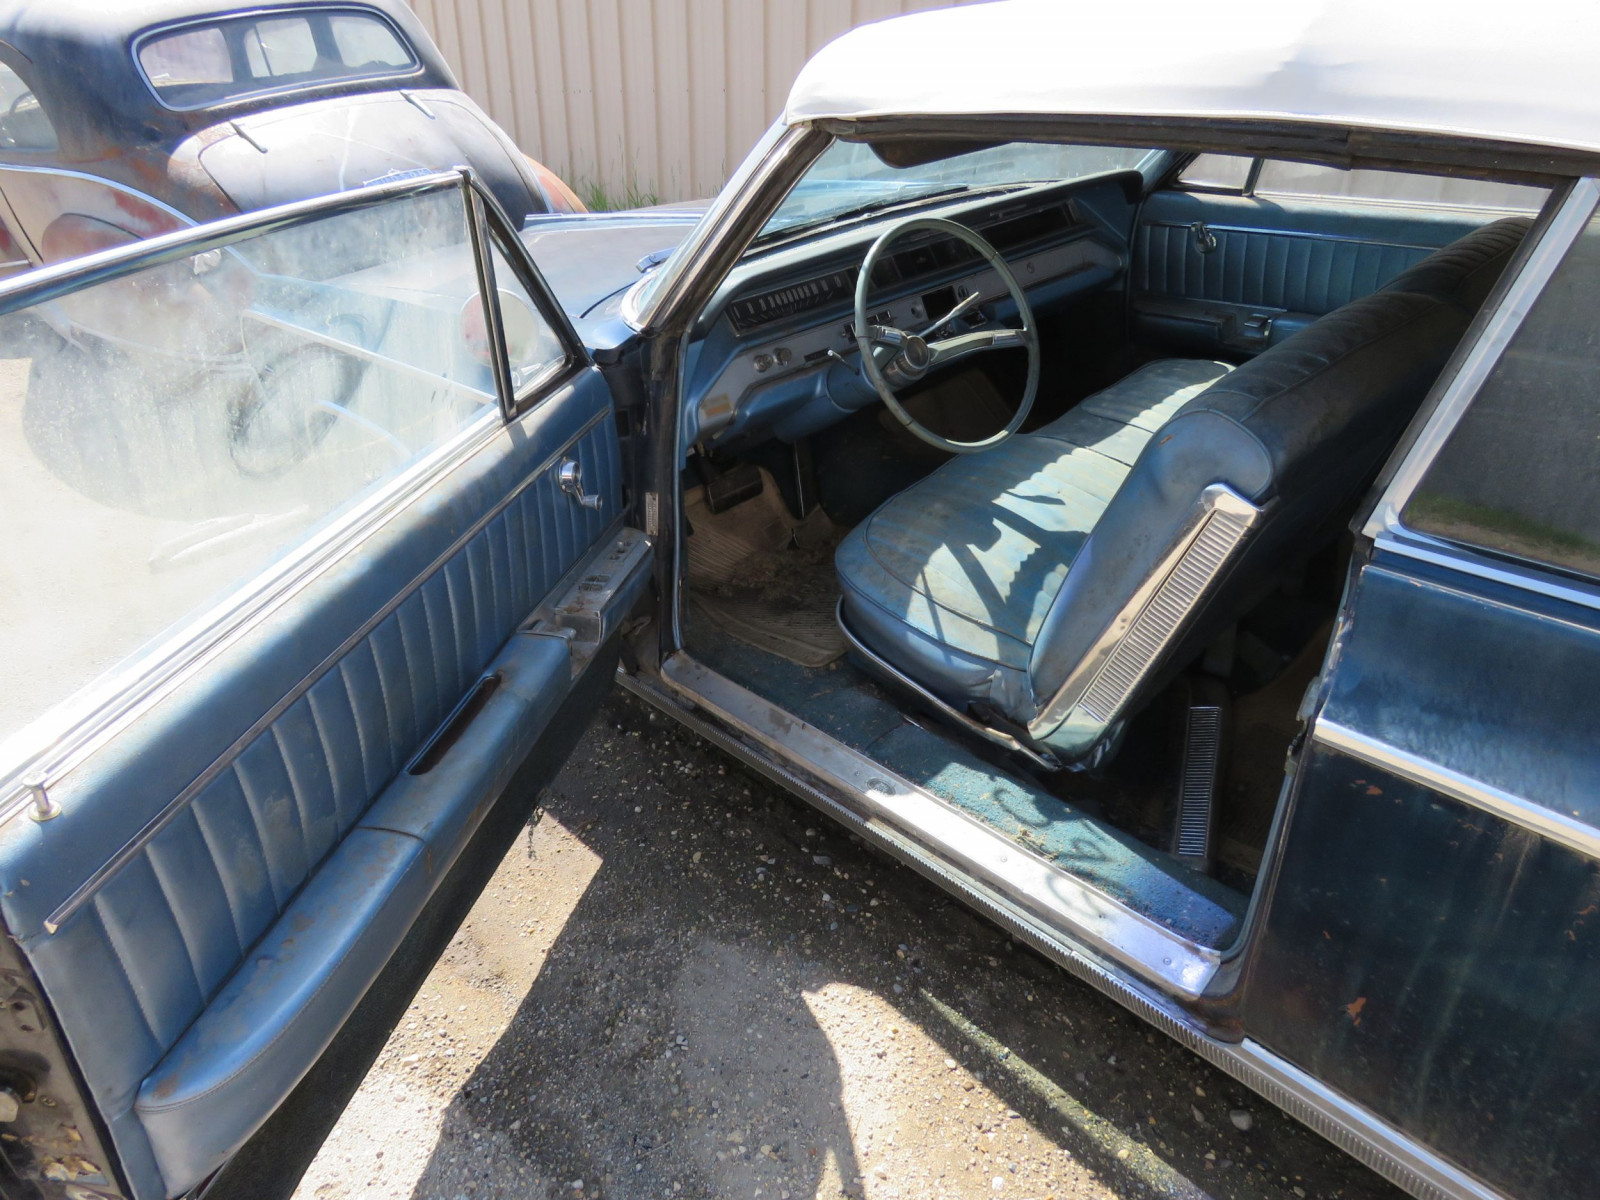 1964 Oldsmobile 98 Convertible 884M302945 - Image 7